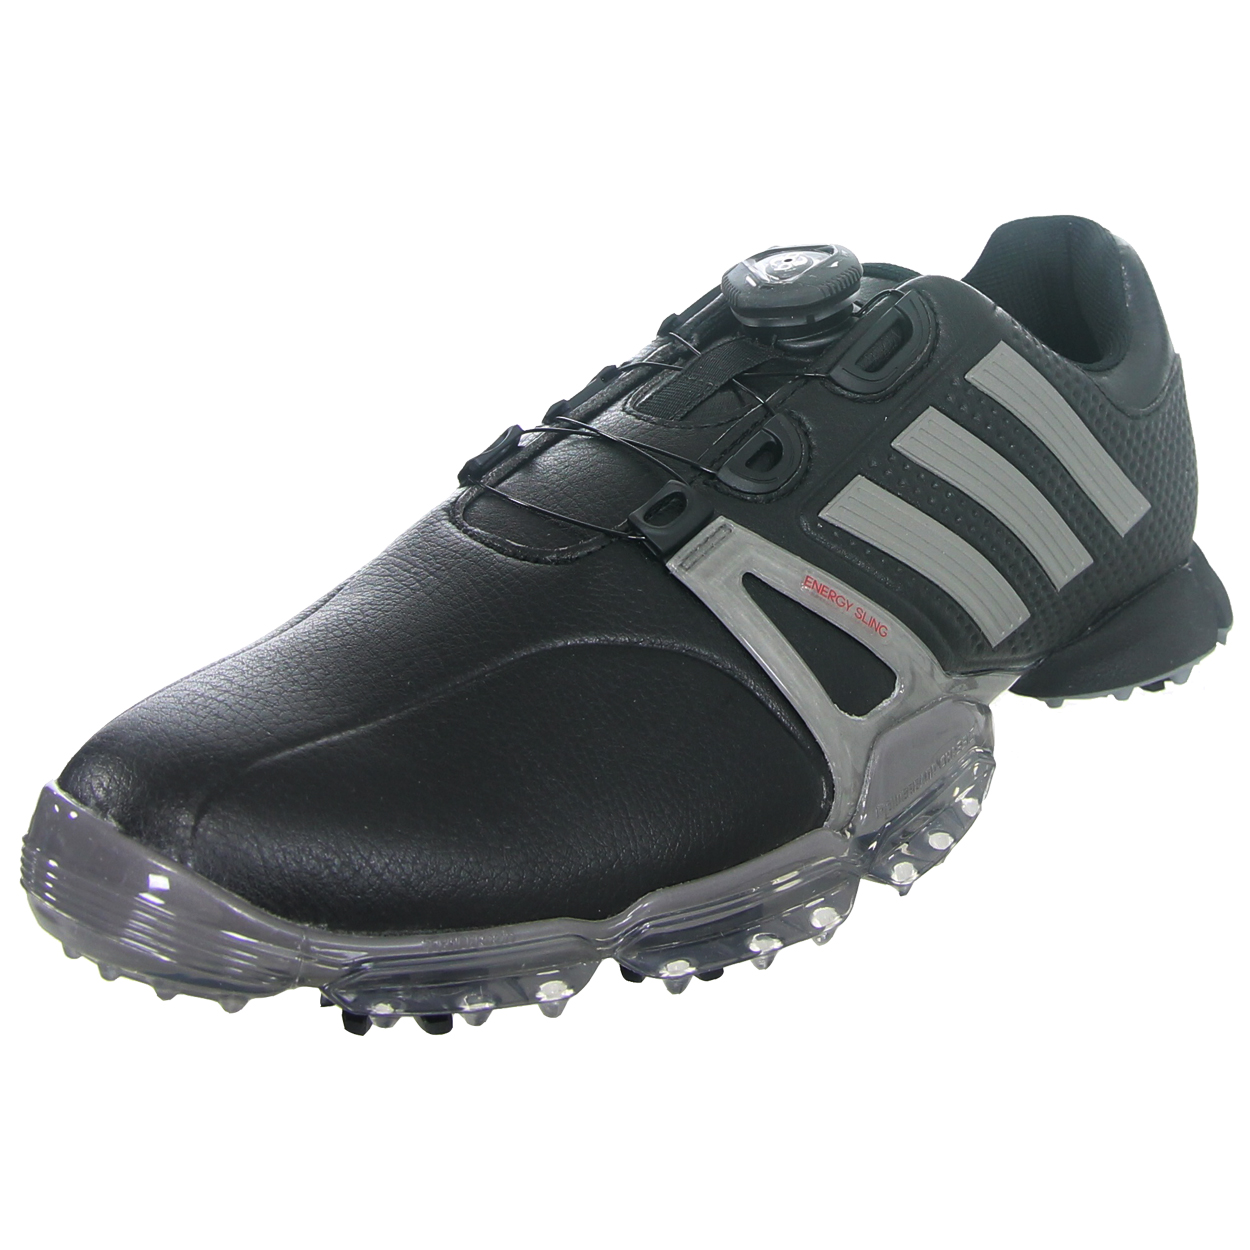 adidas powerband tour golf shoes review